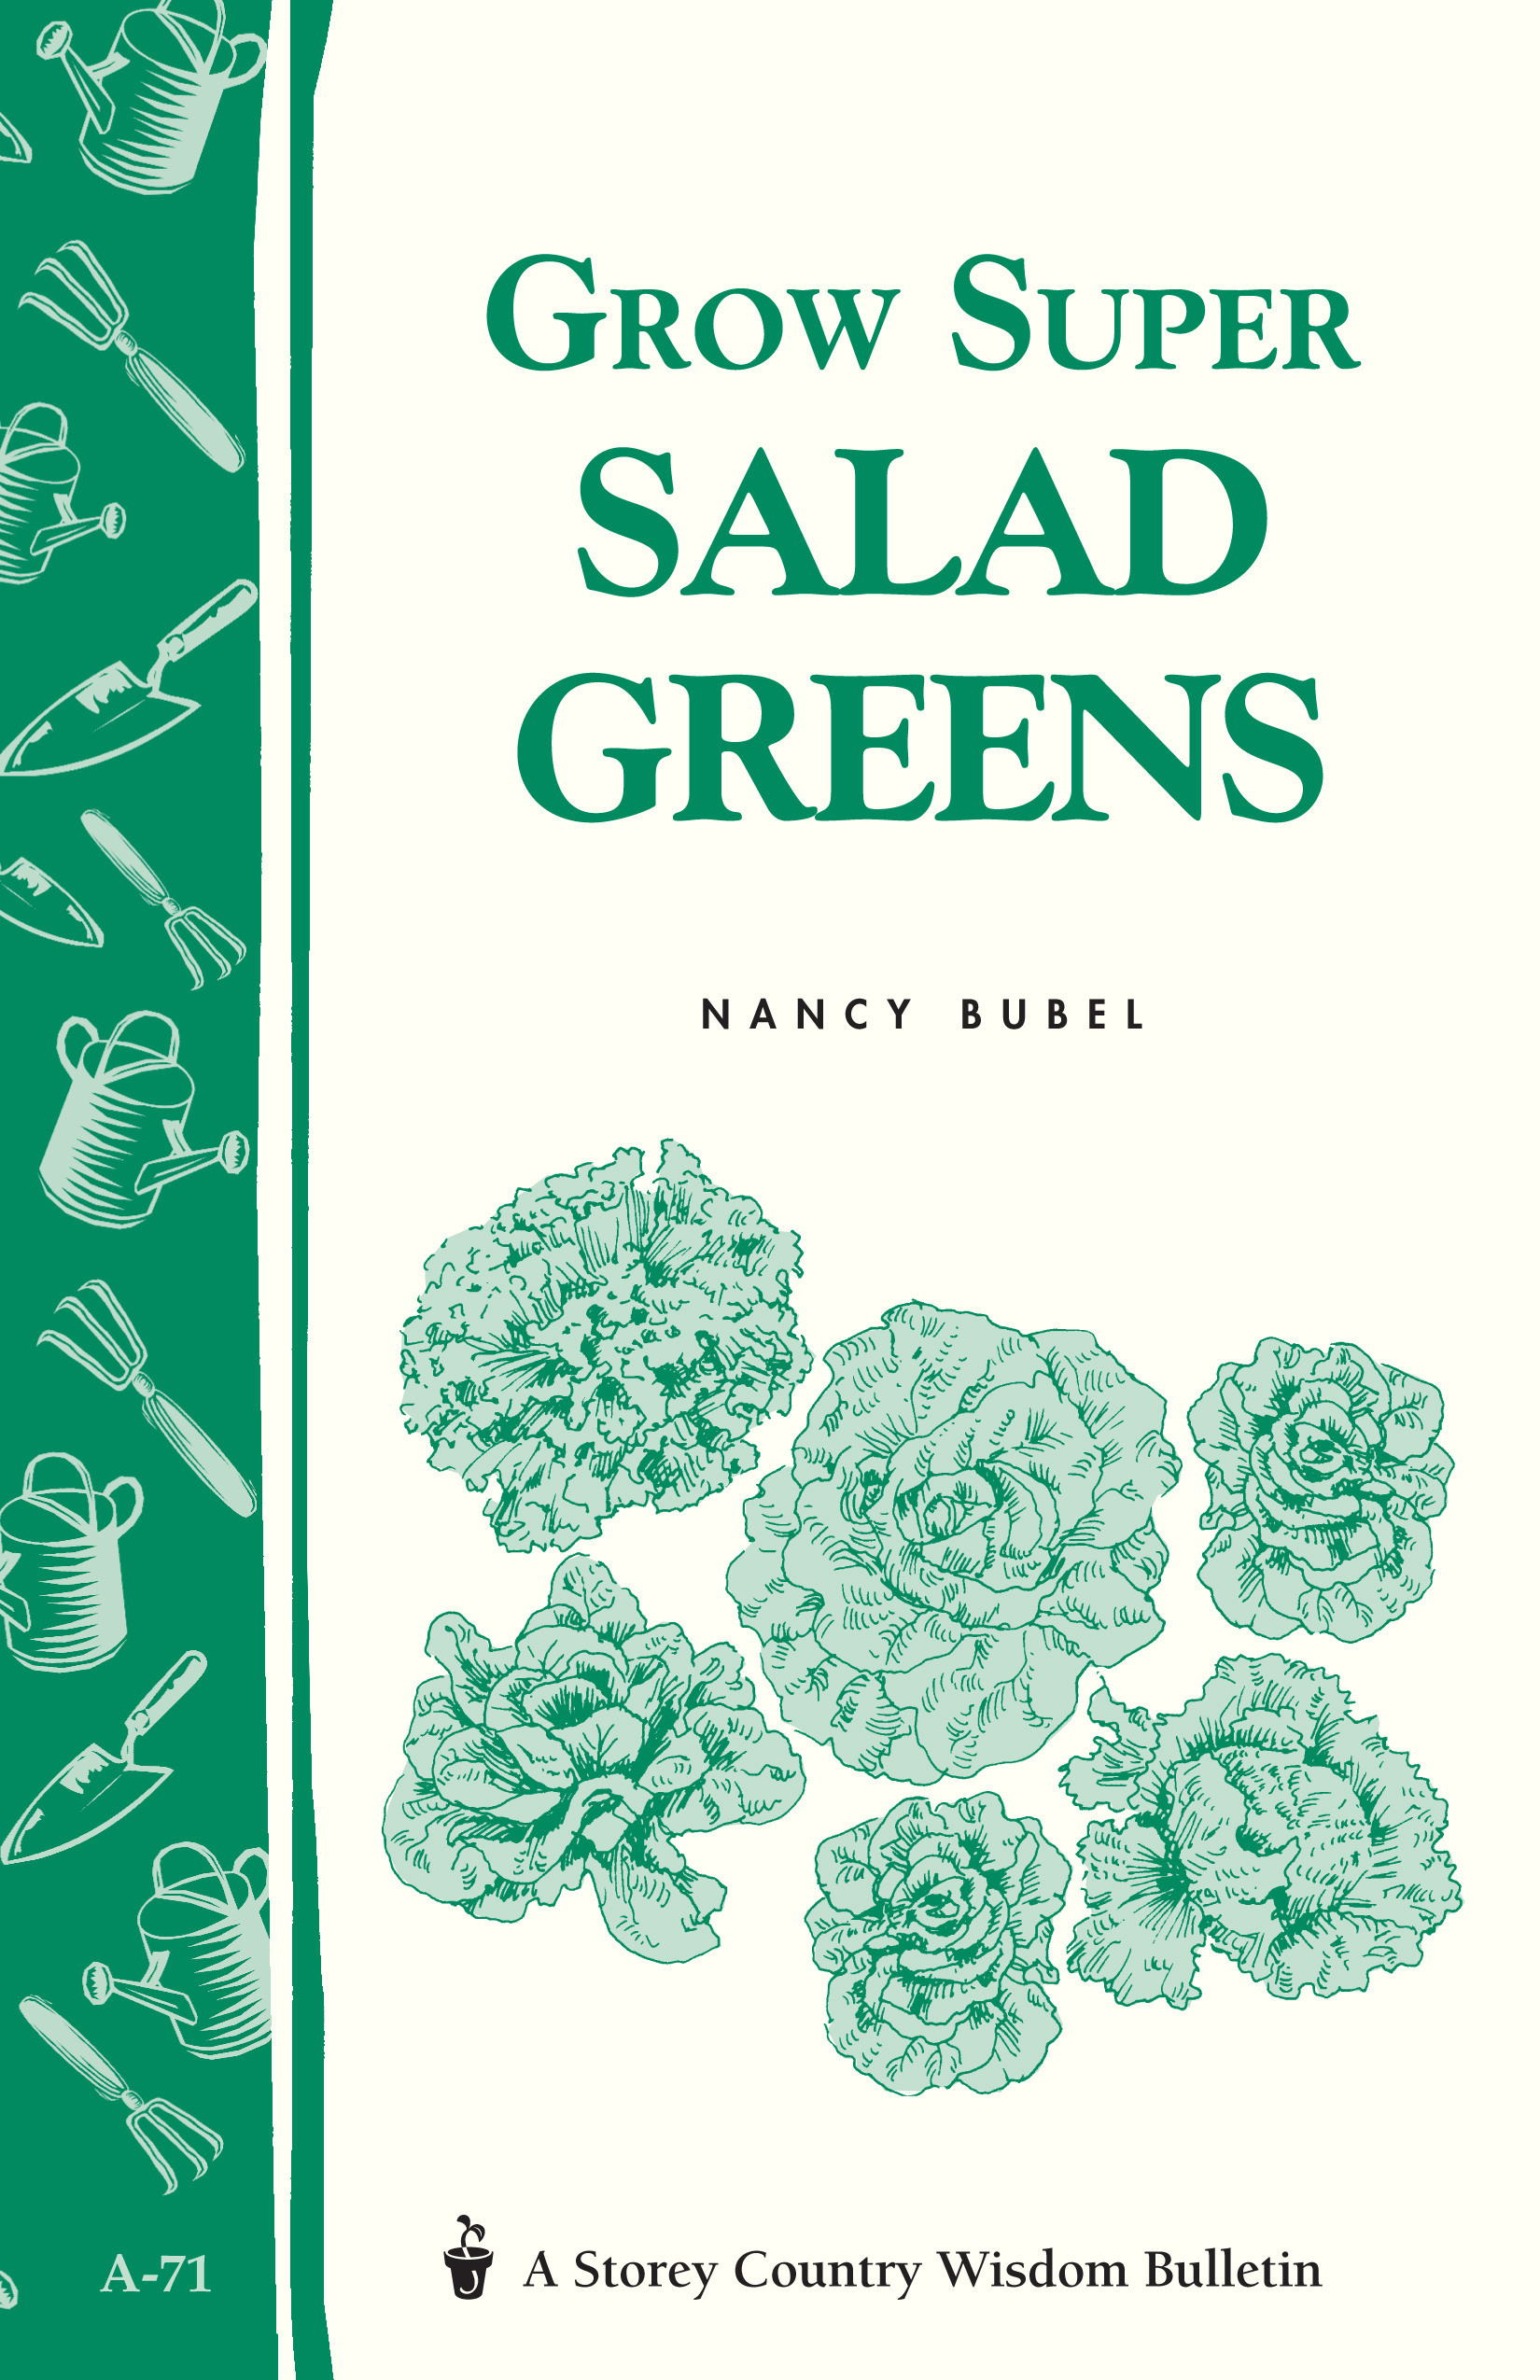 Grow Super Salad Greens Storey's Country Wisdom Bulletin A-71 - Nancy Bubel